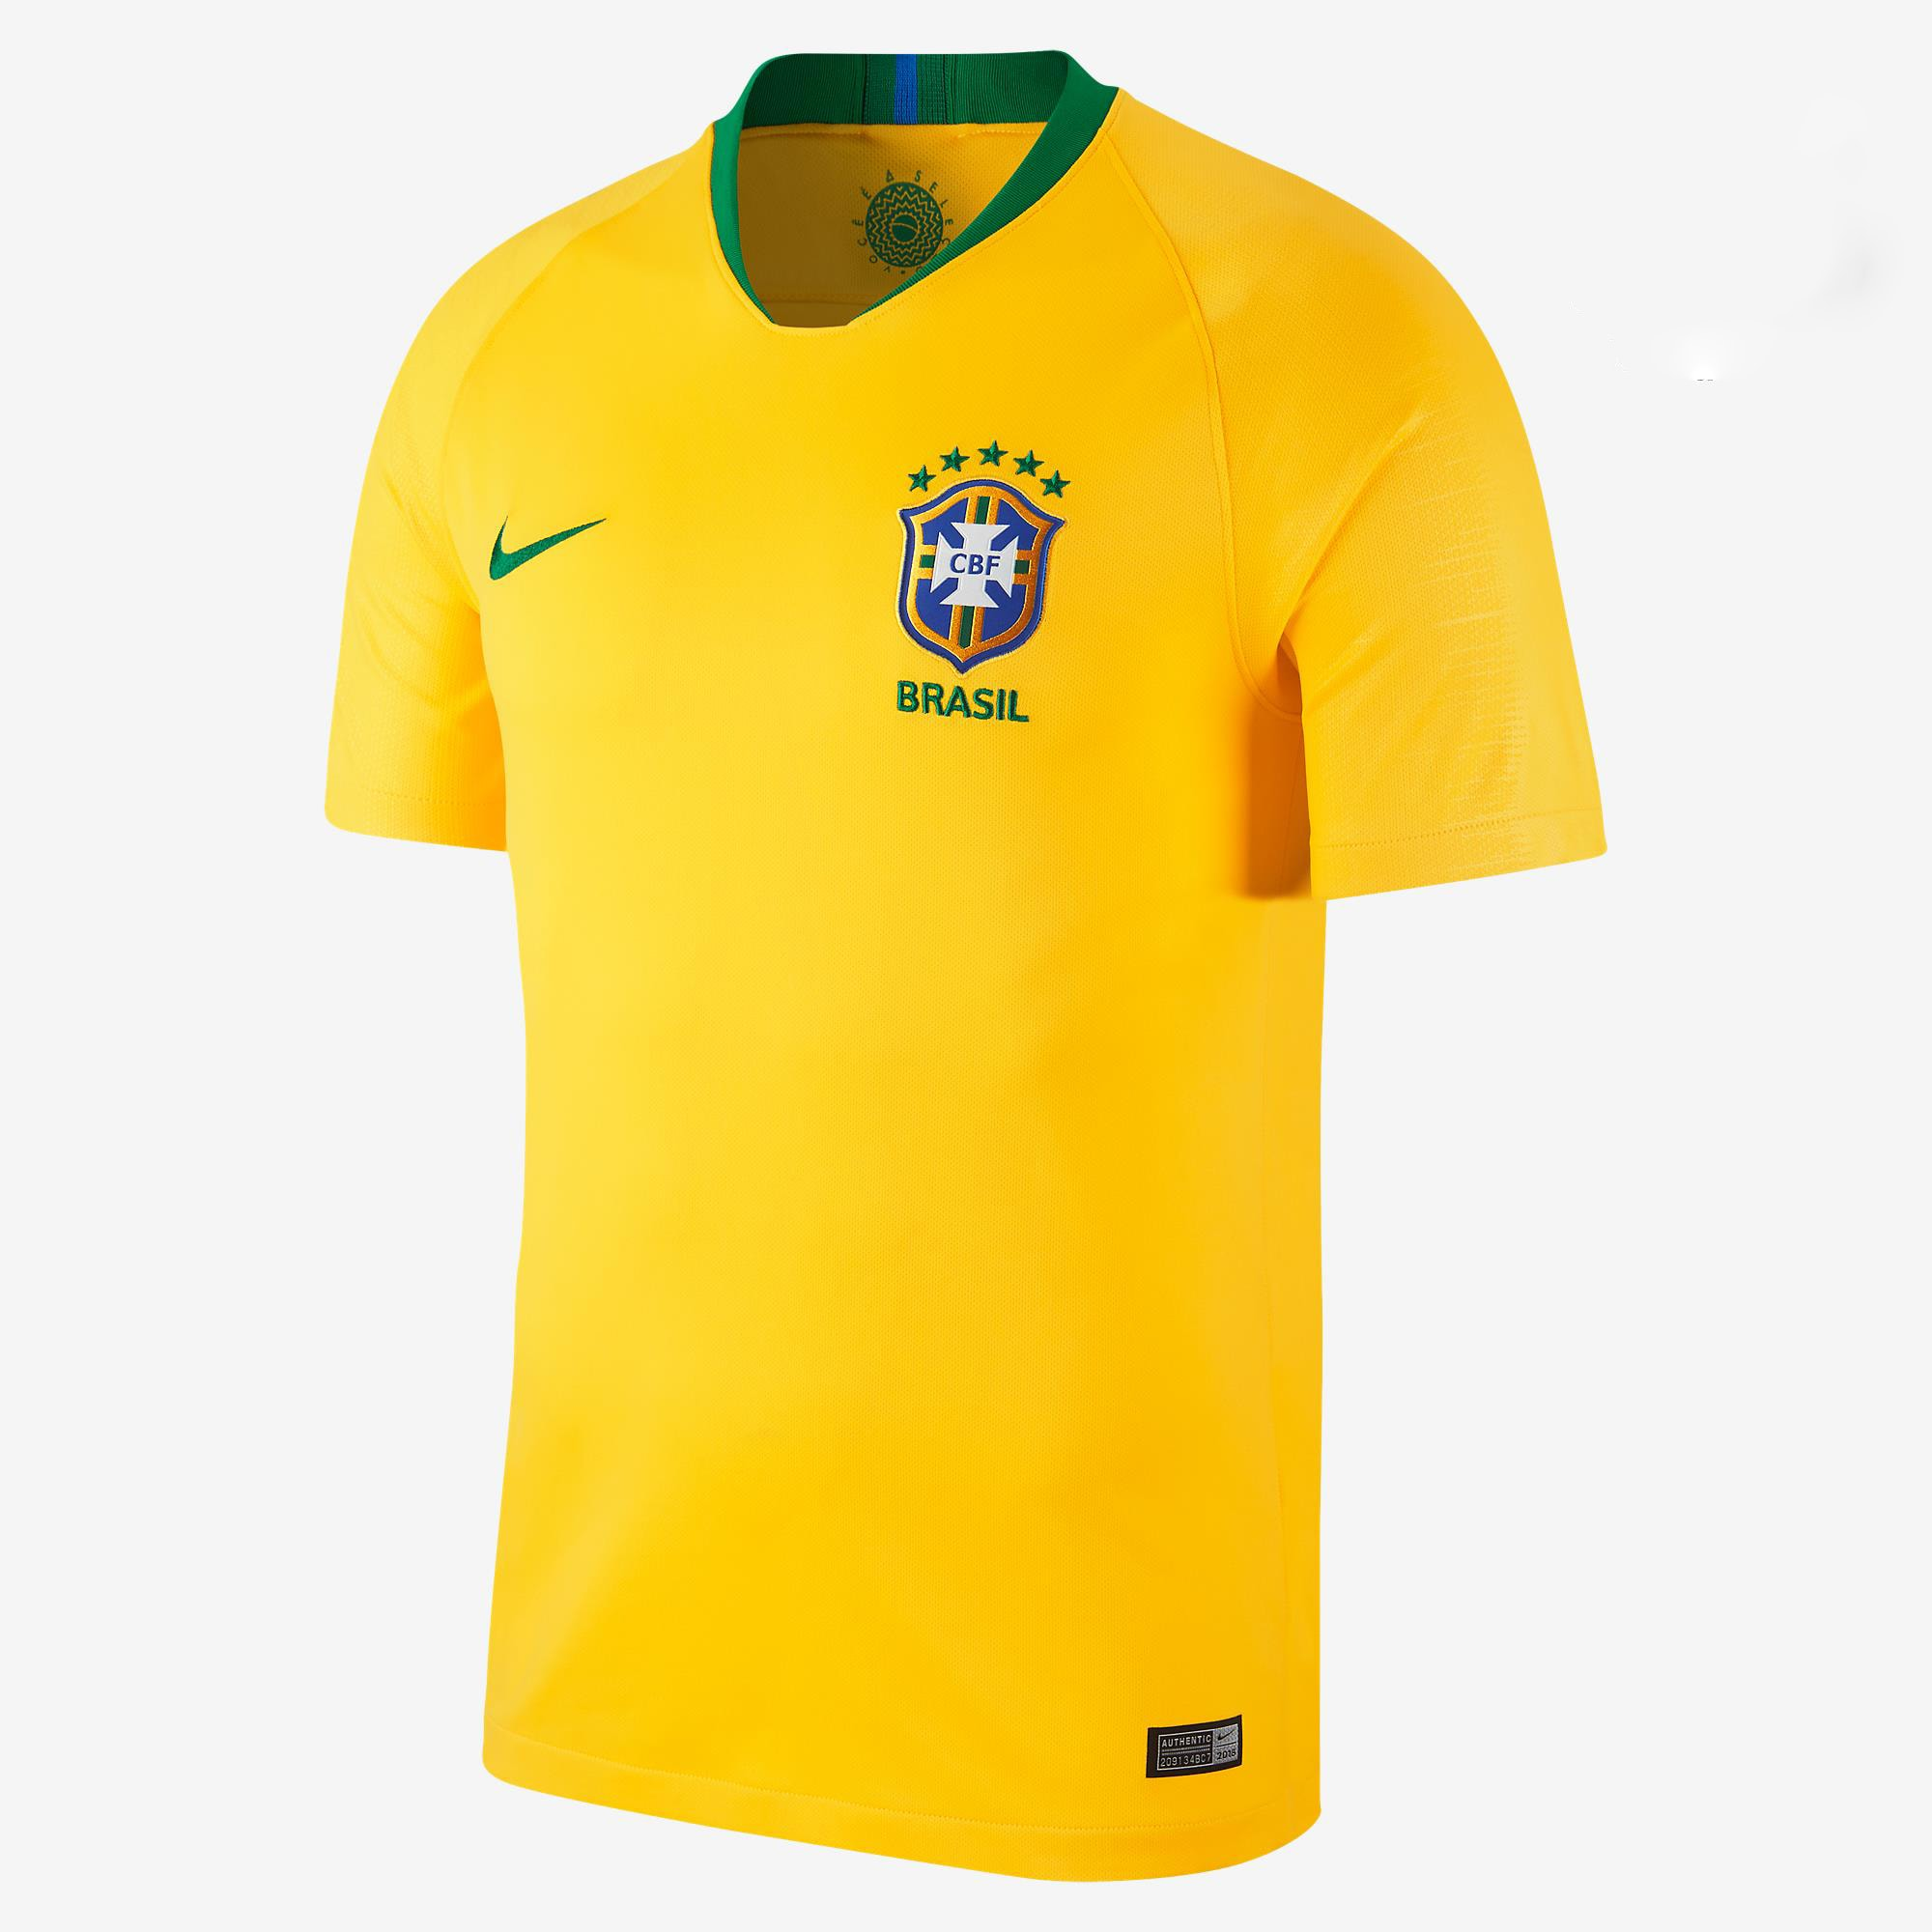 Brazil Home Jersey FIFA World Cup 2018 - Diamu Jerseys 8ebb0943e